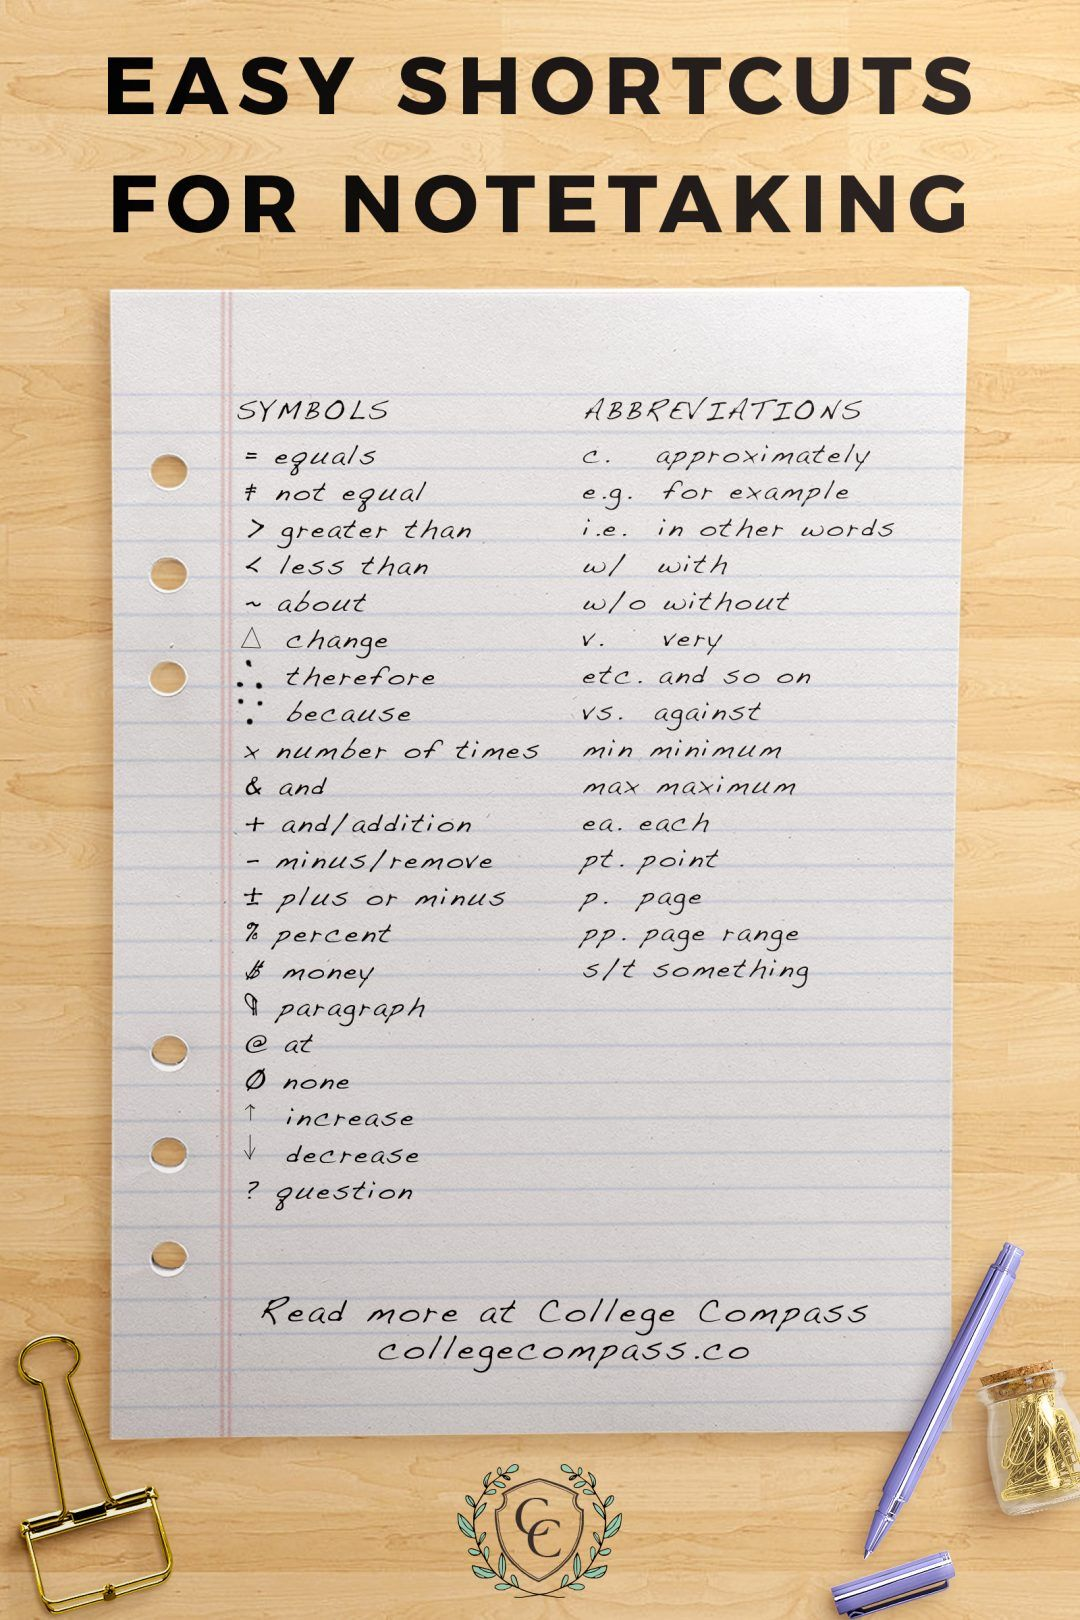 How to Take Cornell Notes (Plus a Free Worksheet Pack!)   College Compass